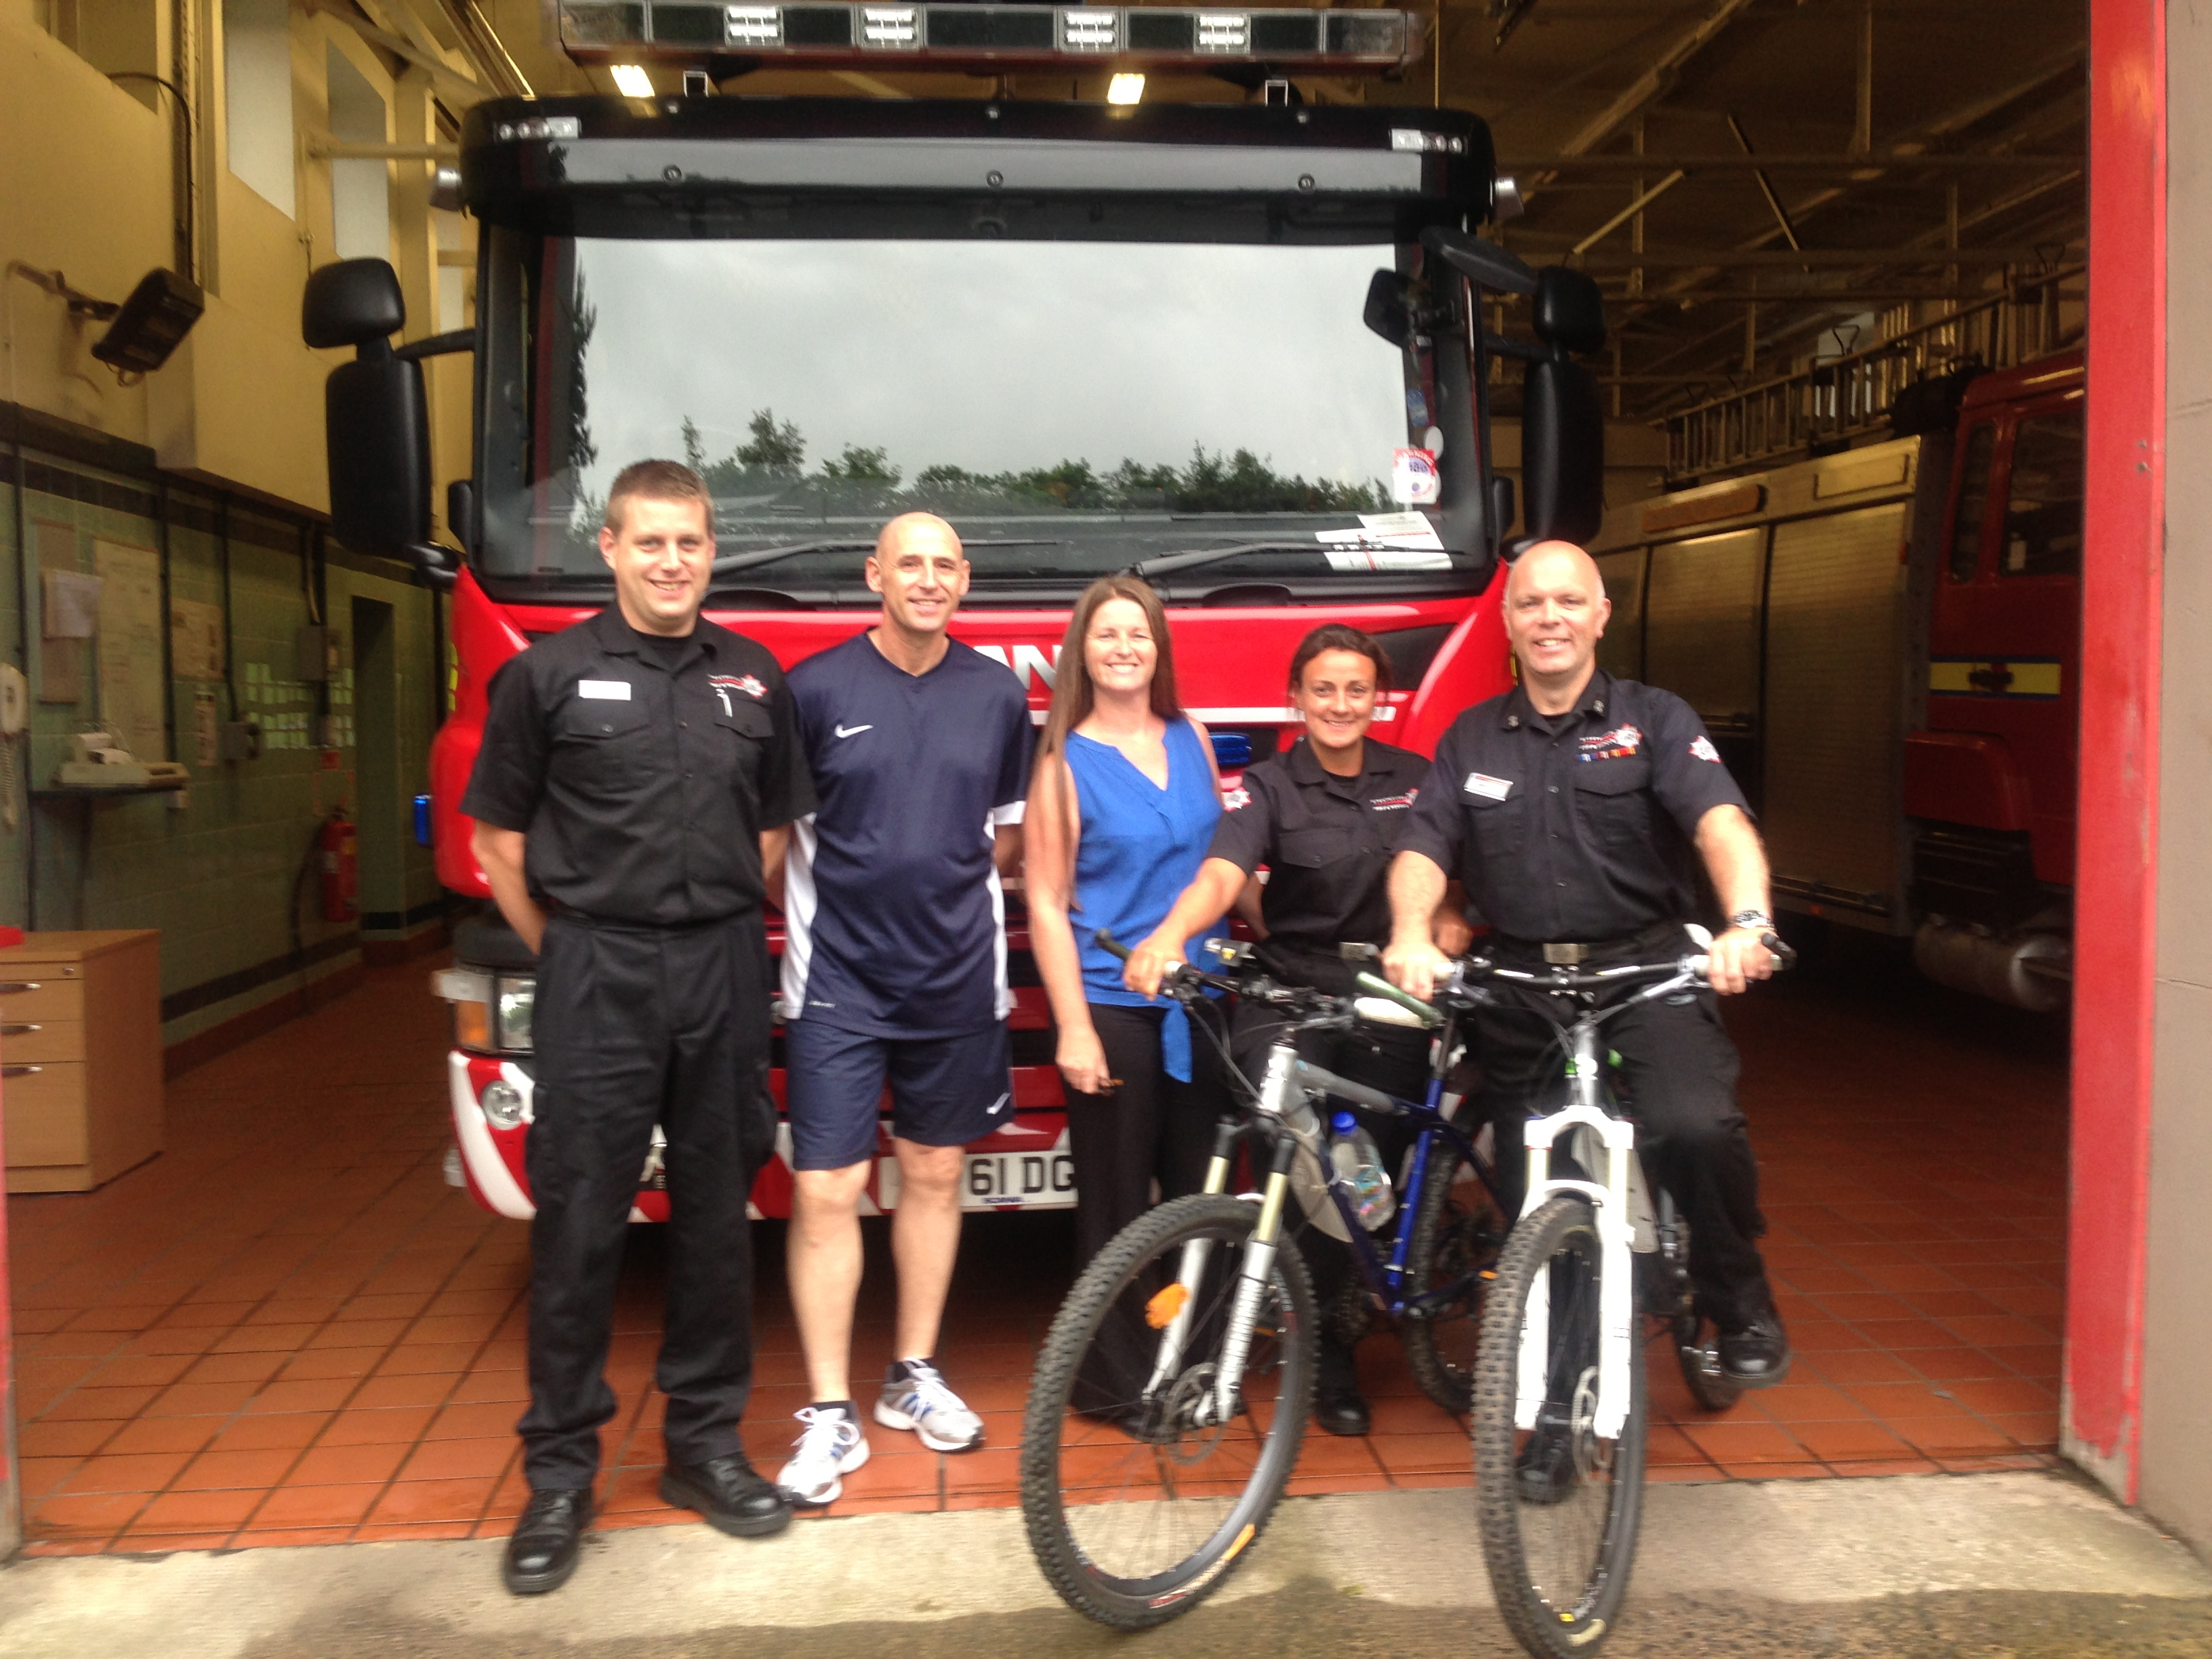 Canal festival to see firefighters' charity cycle